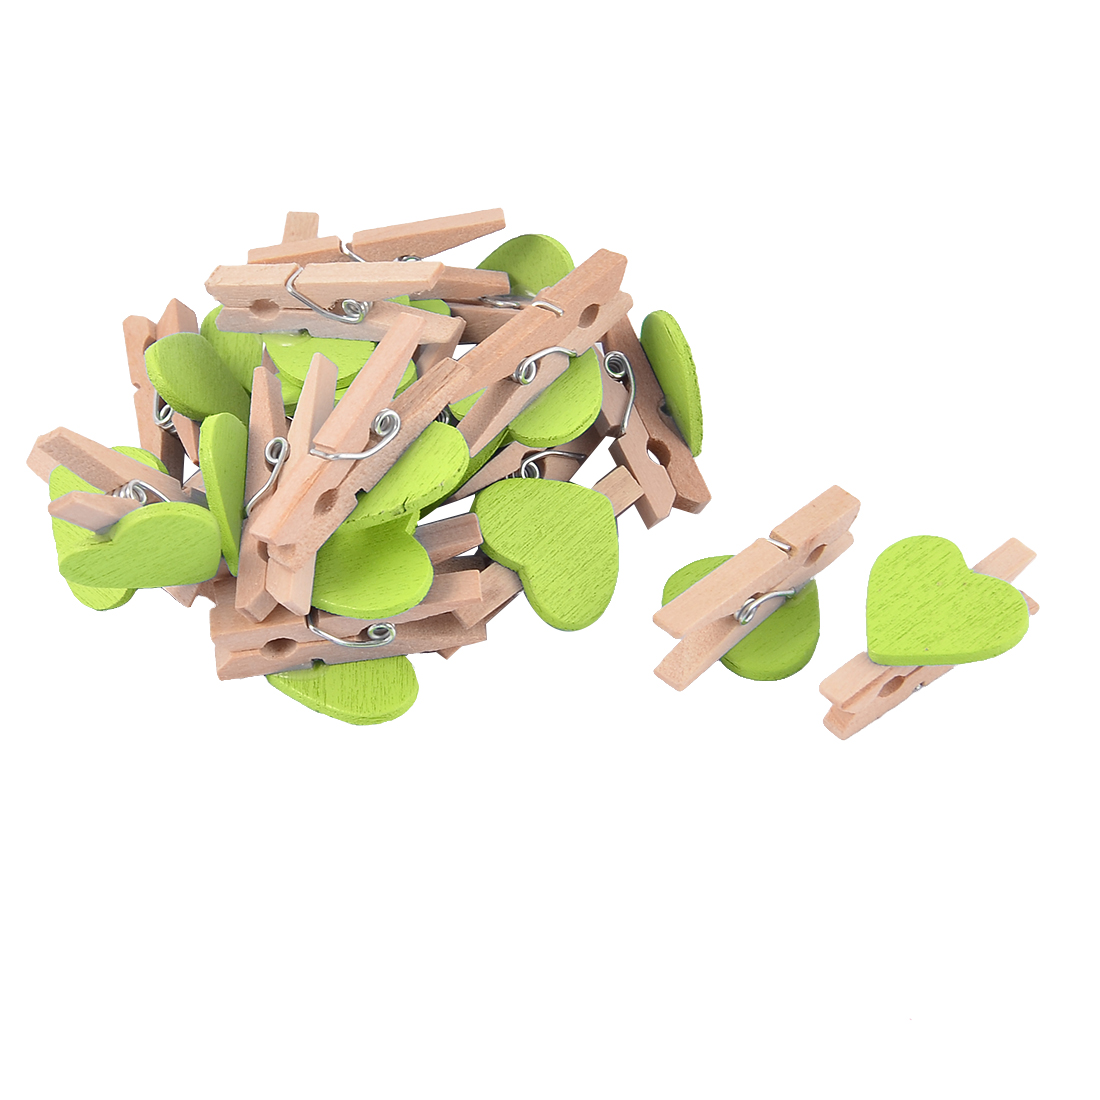 20pcs Assorted Wooden Pegs Wedding Table Place Card Photo Holders Clips Craft